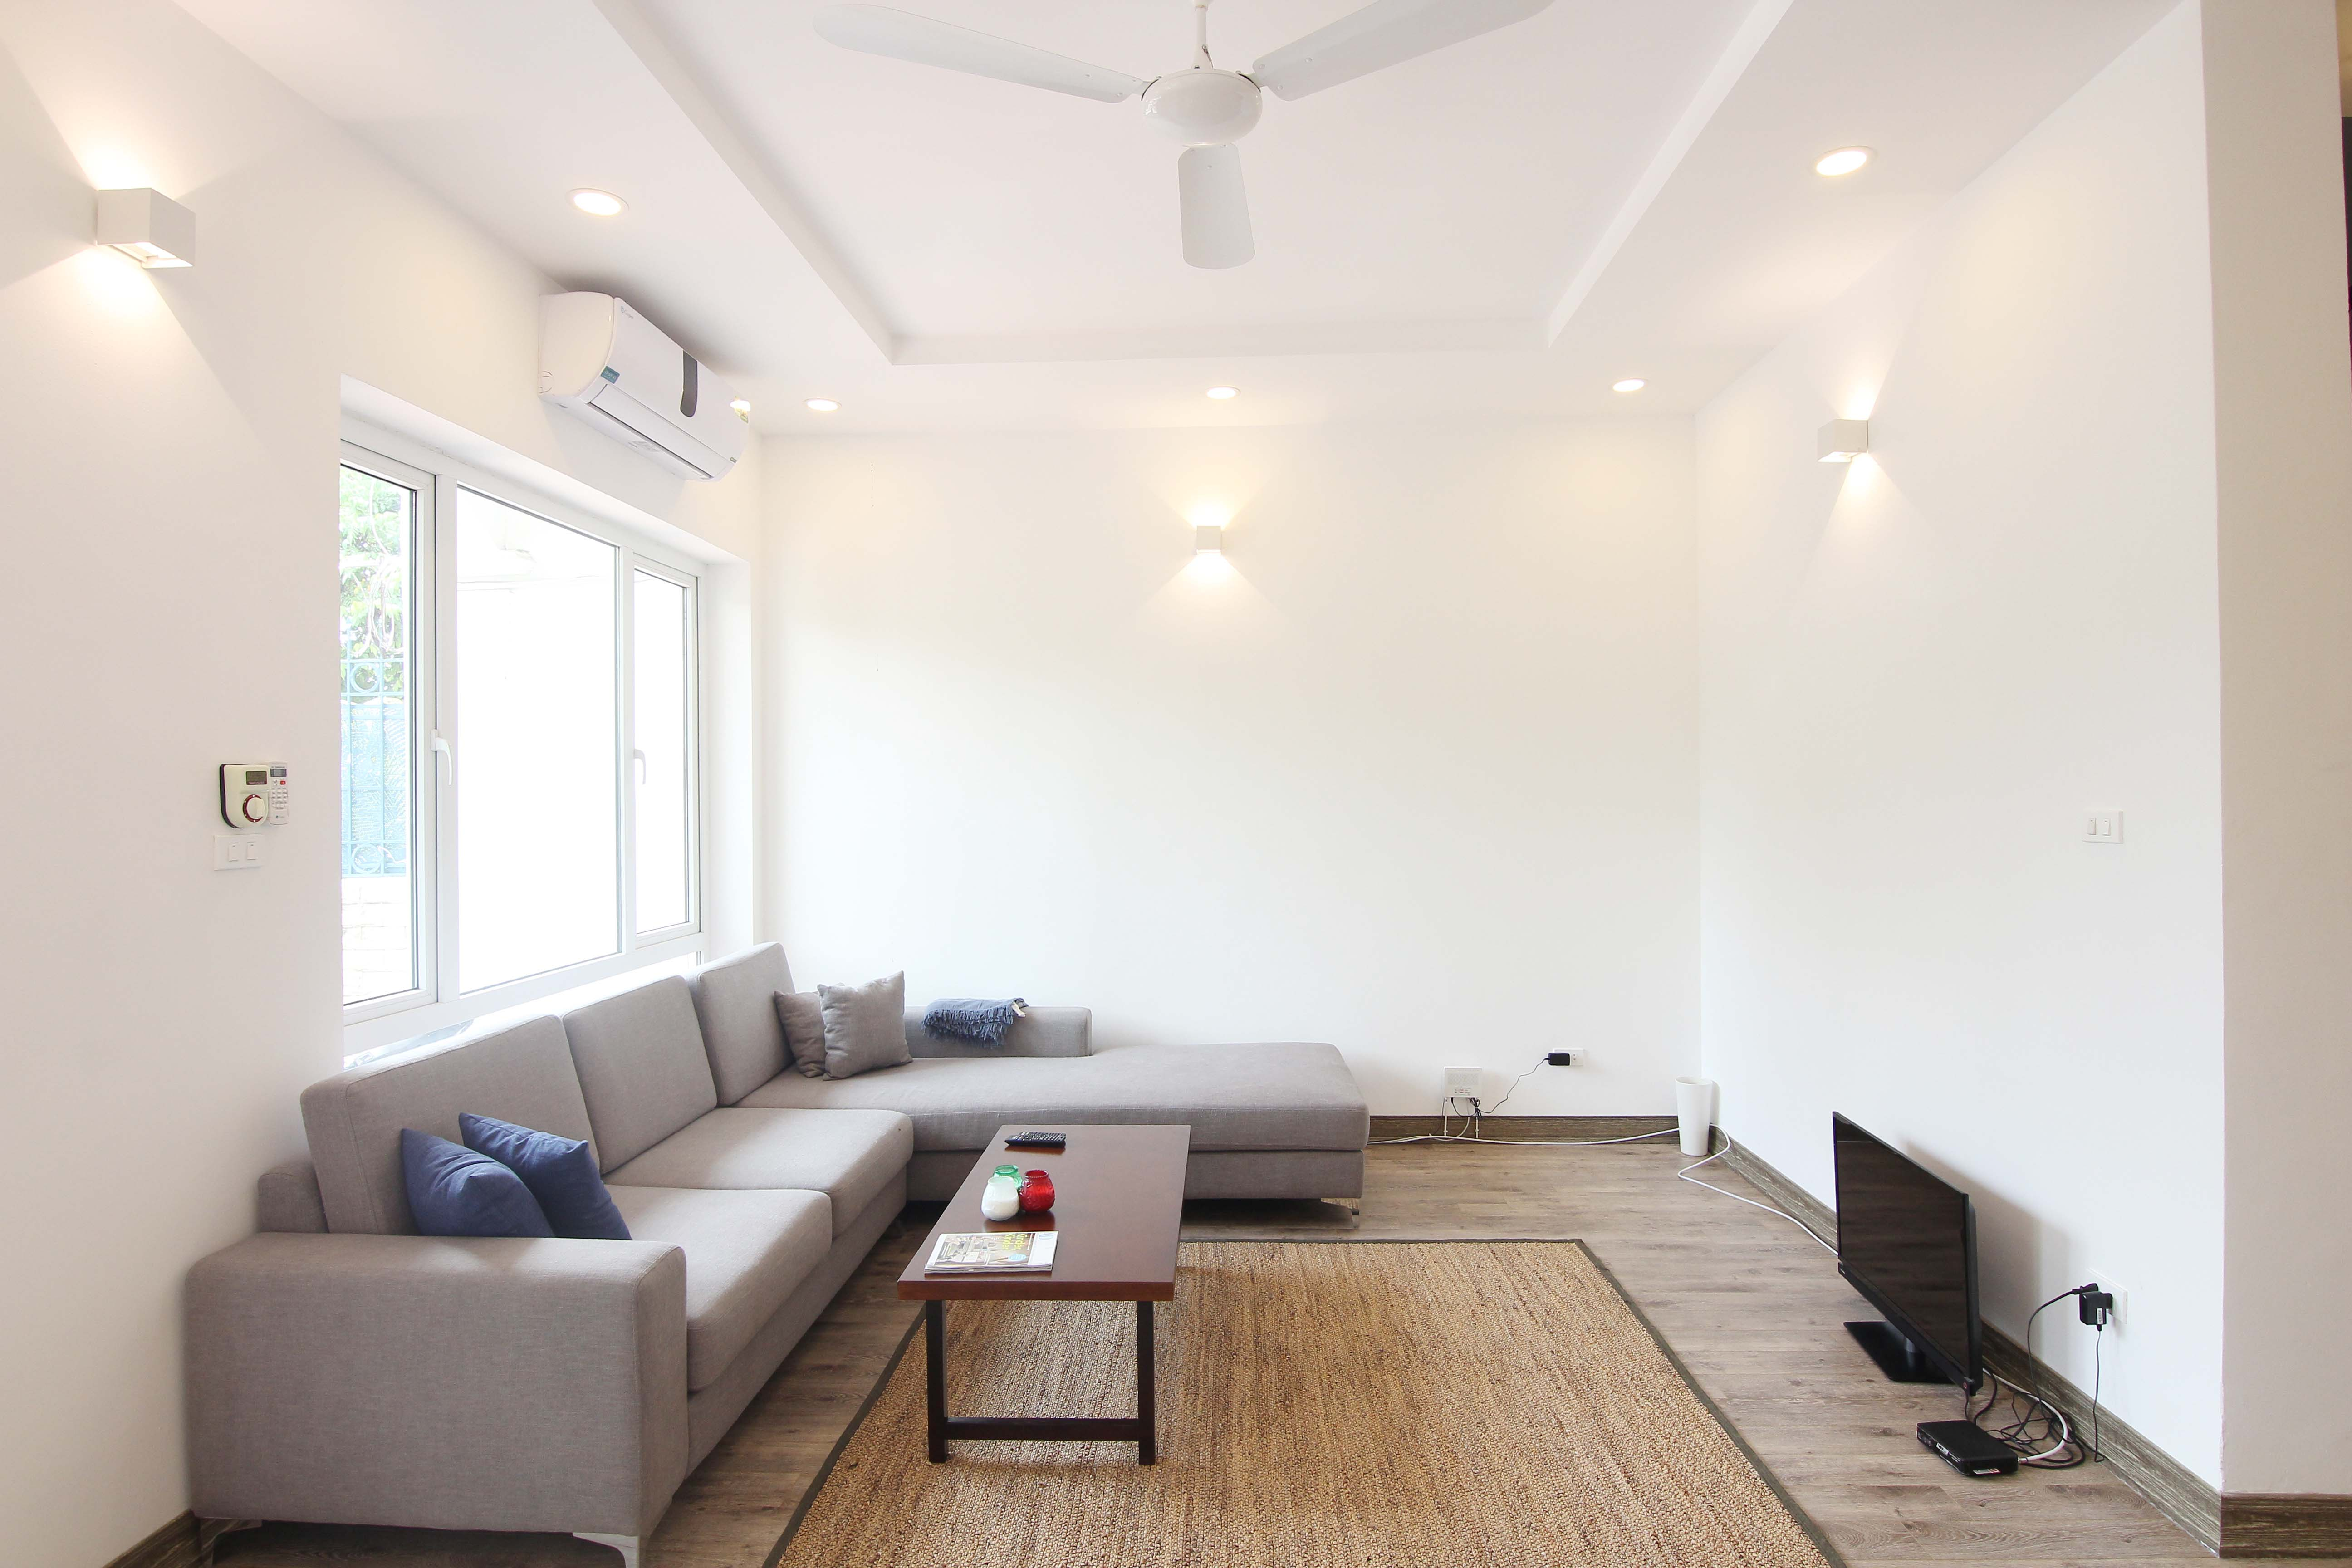 A lovely villa with 5 bedroom for rent on Xom Chua street, Tay Ho district 2